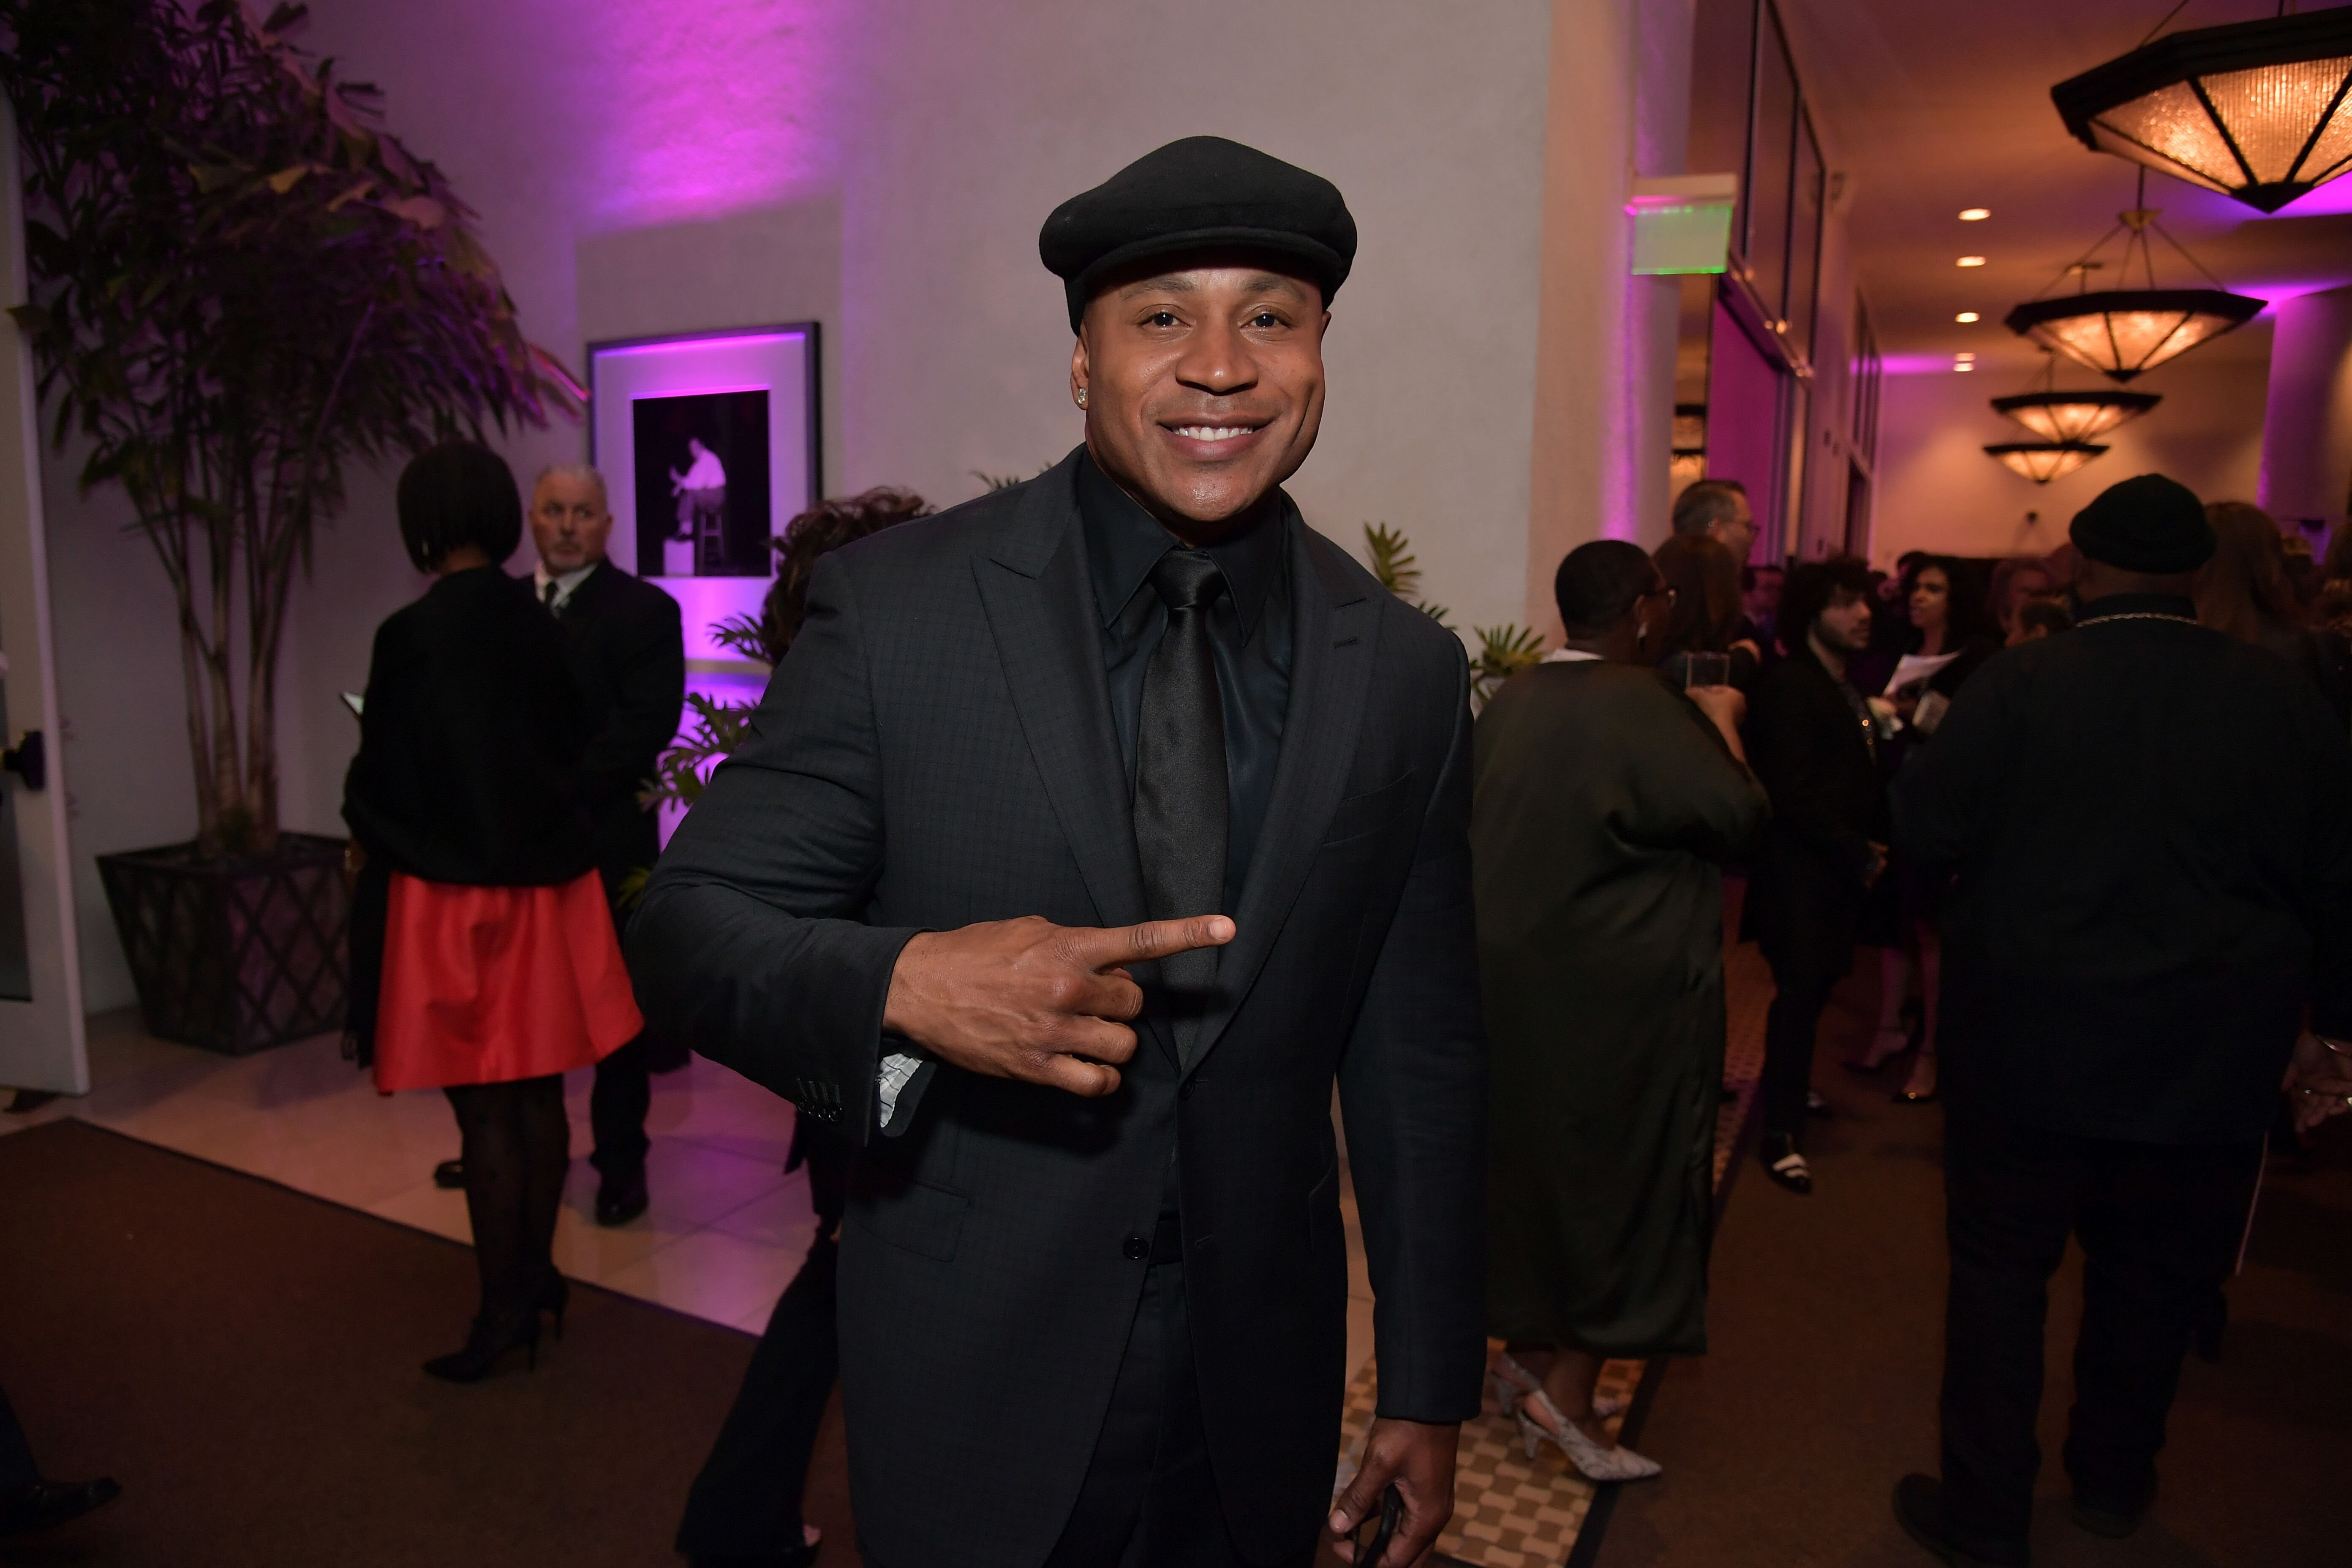 LL Cool J posing for a photo at a formal event | Source: Getty Images/GlobalImagesUkraine